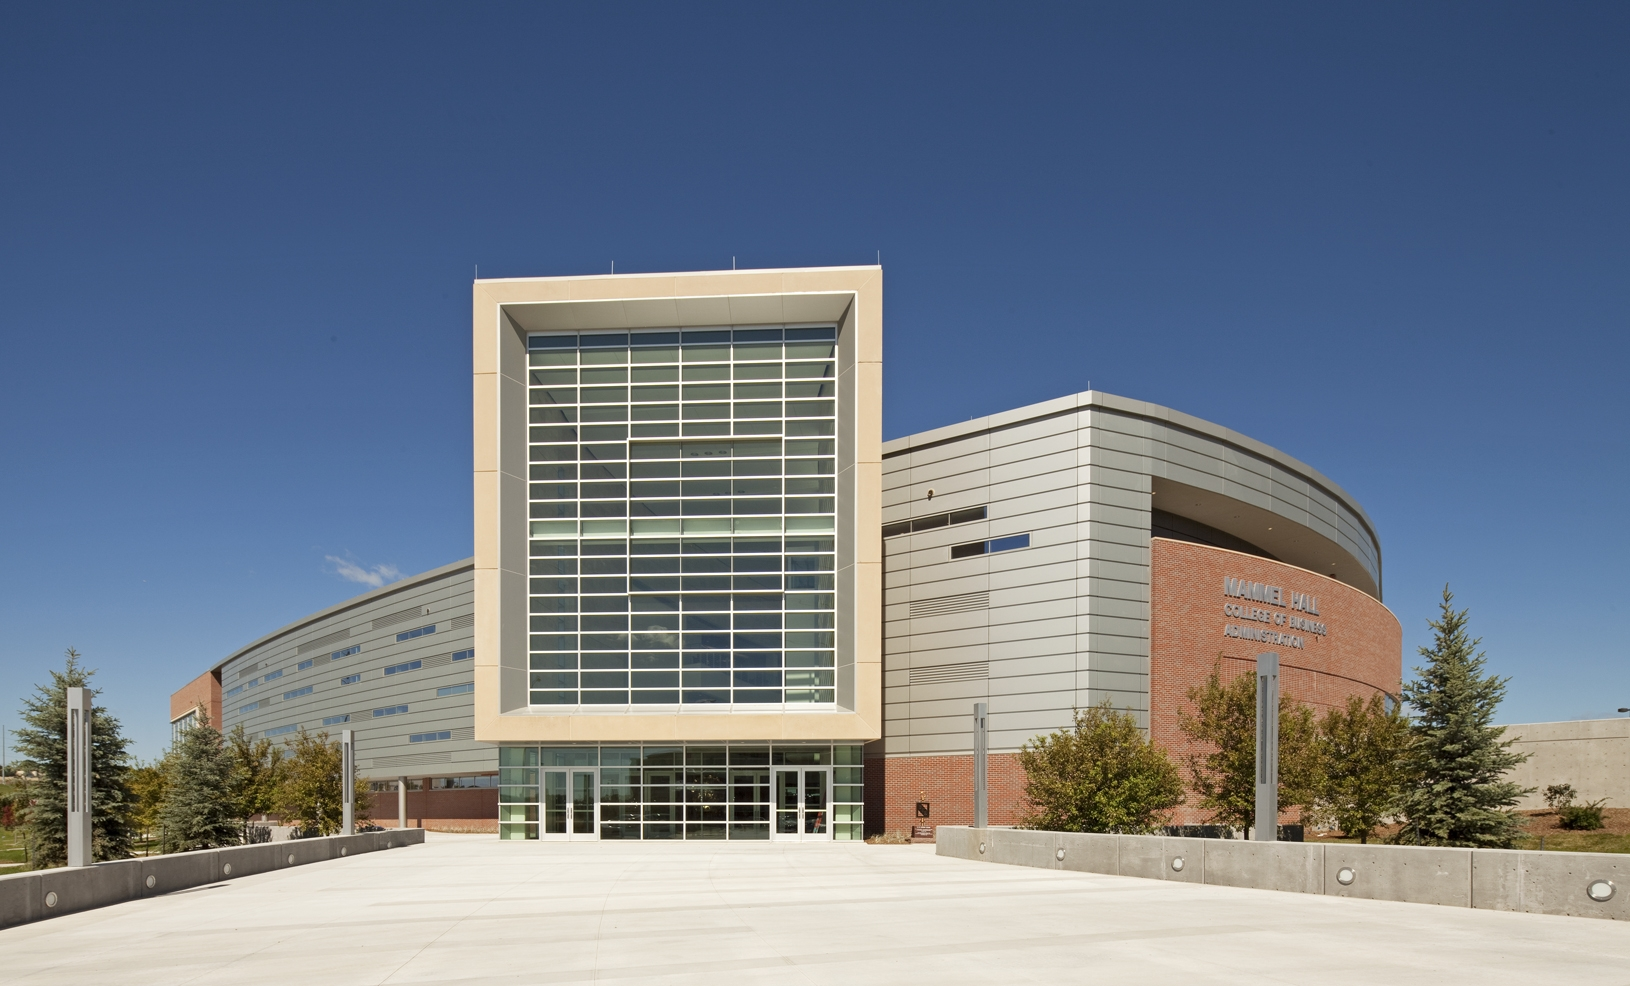 Photograph of Mammel Hall on University of Nebraska Omaha